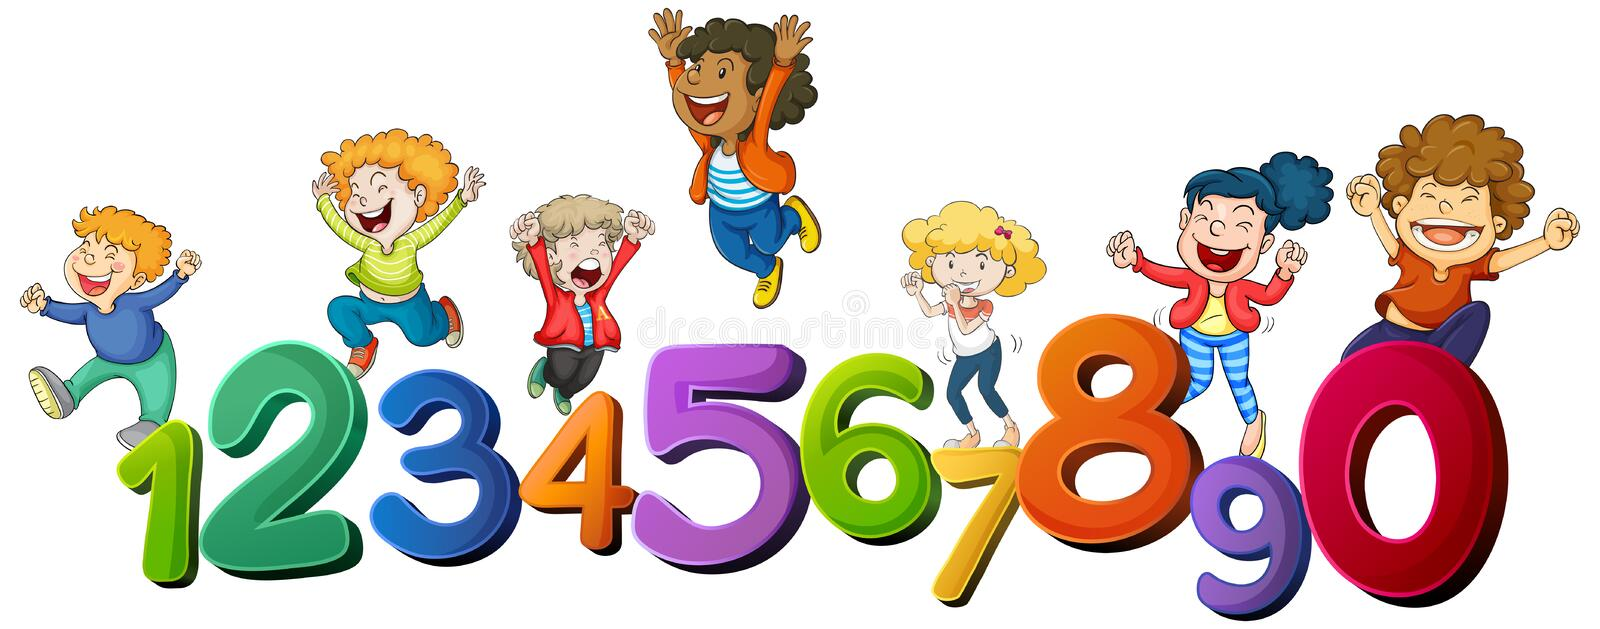 Happy children and numbers one to zero royalty free illustration